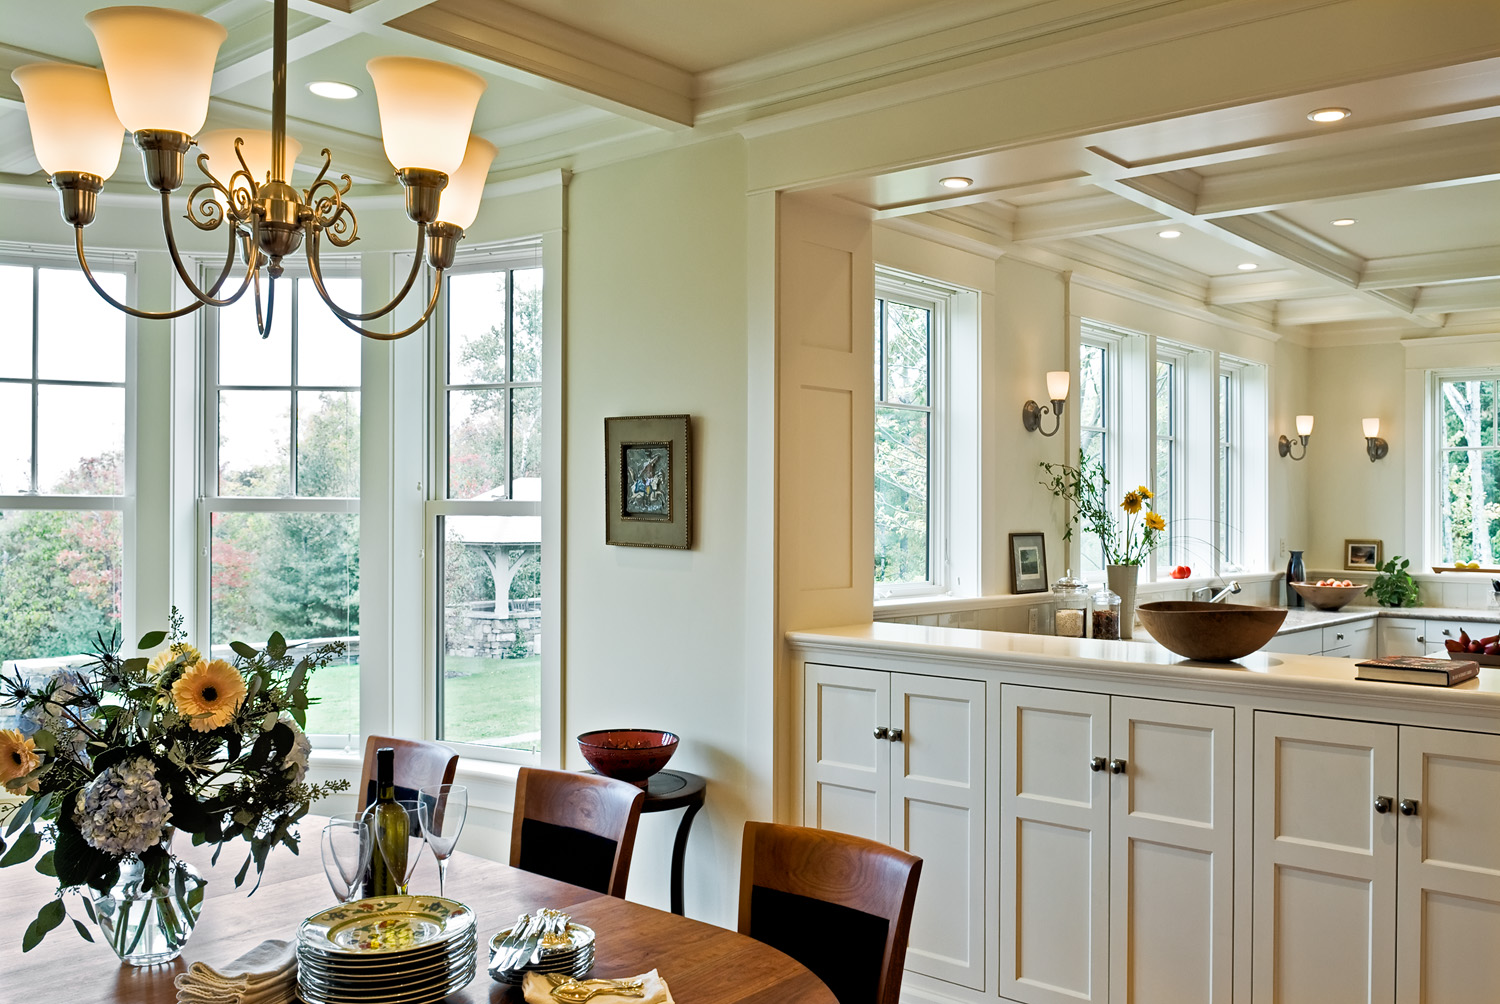 11 From dining room into kitchen.jpg